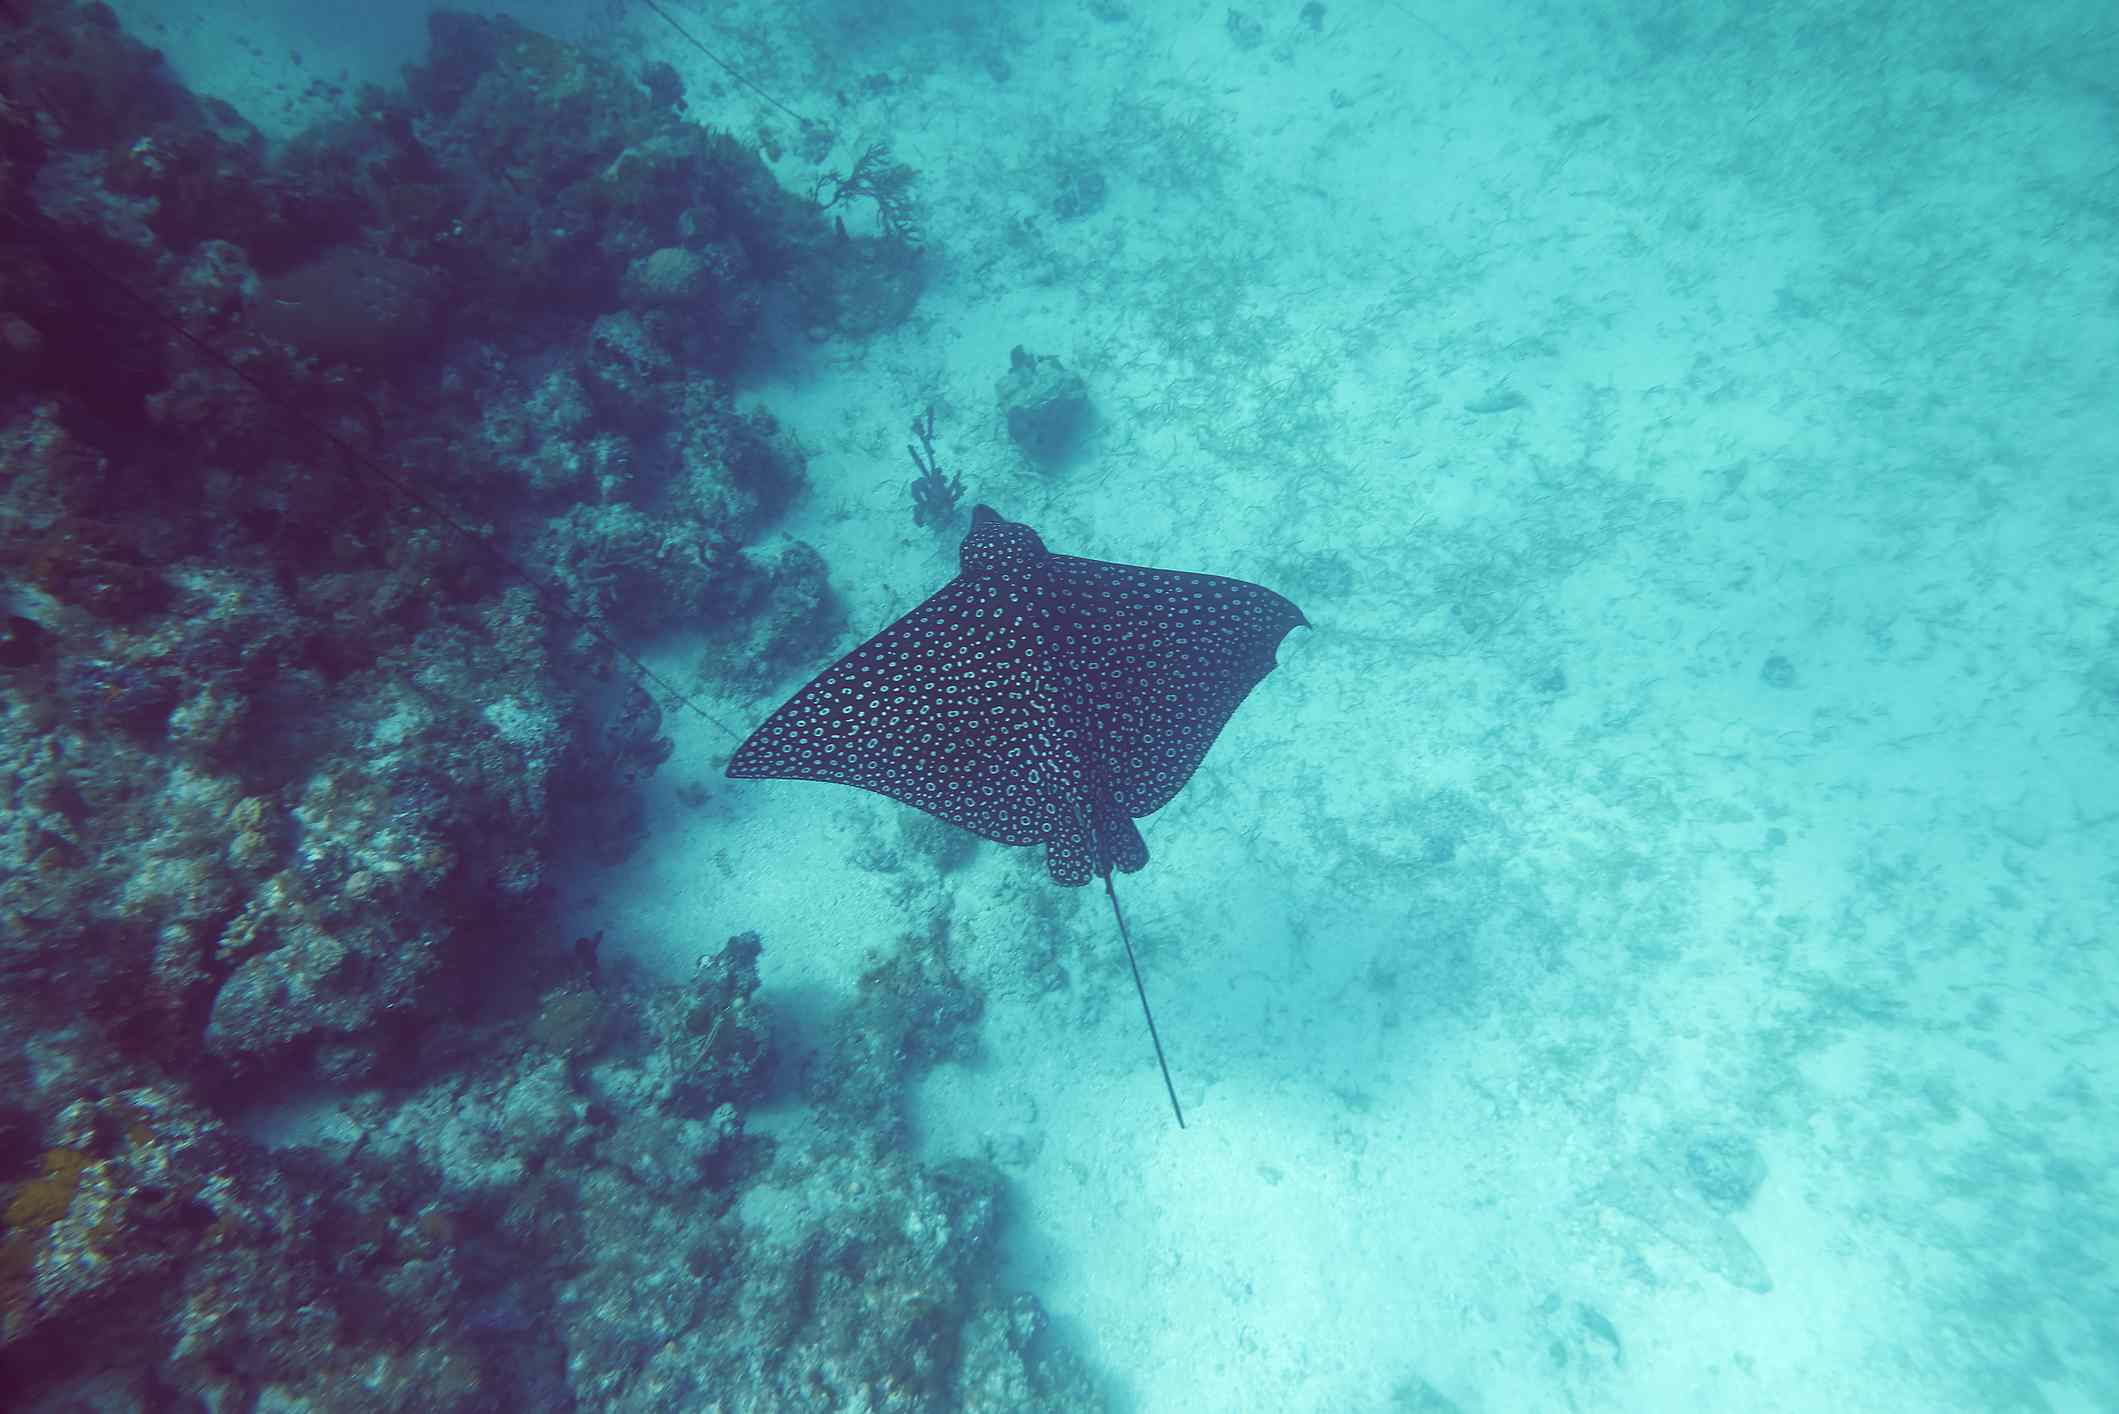 Spotted Eagle Ray at Smith's Reef, Turtle Cove